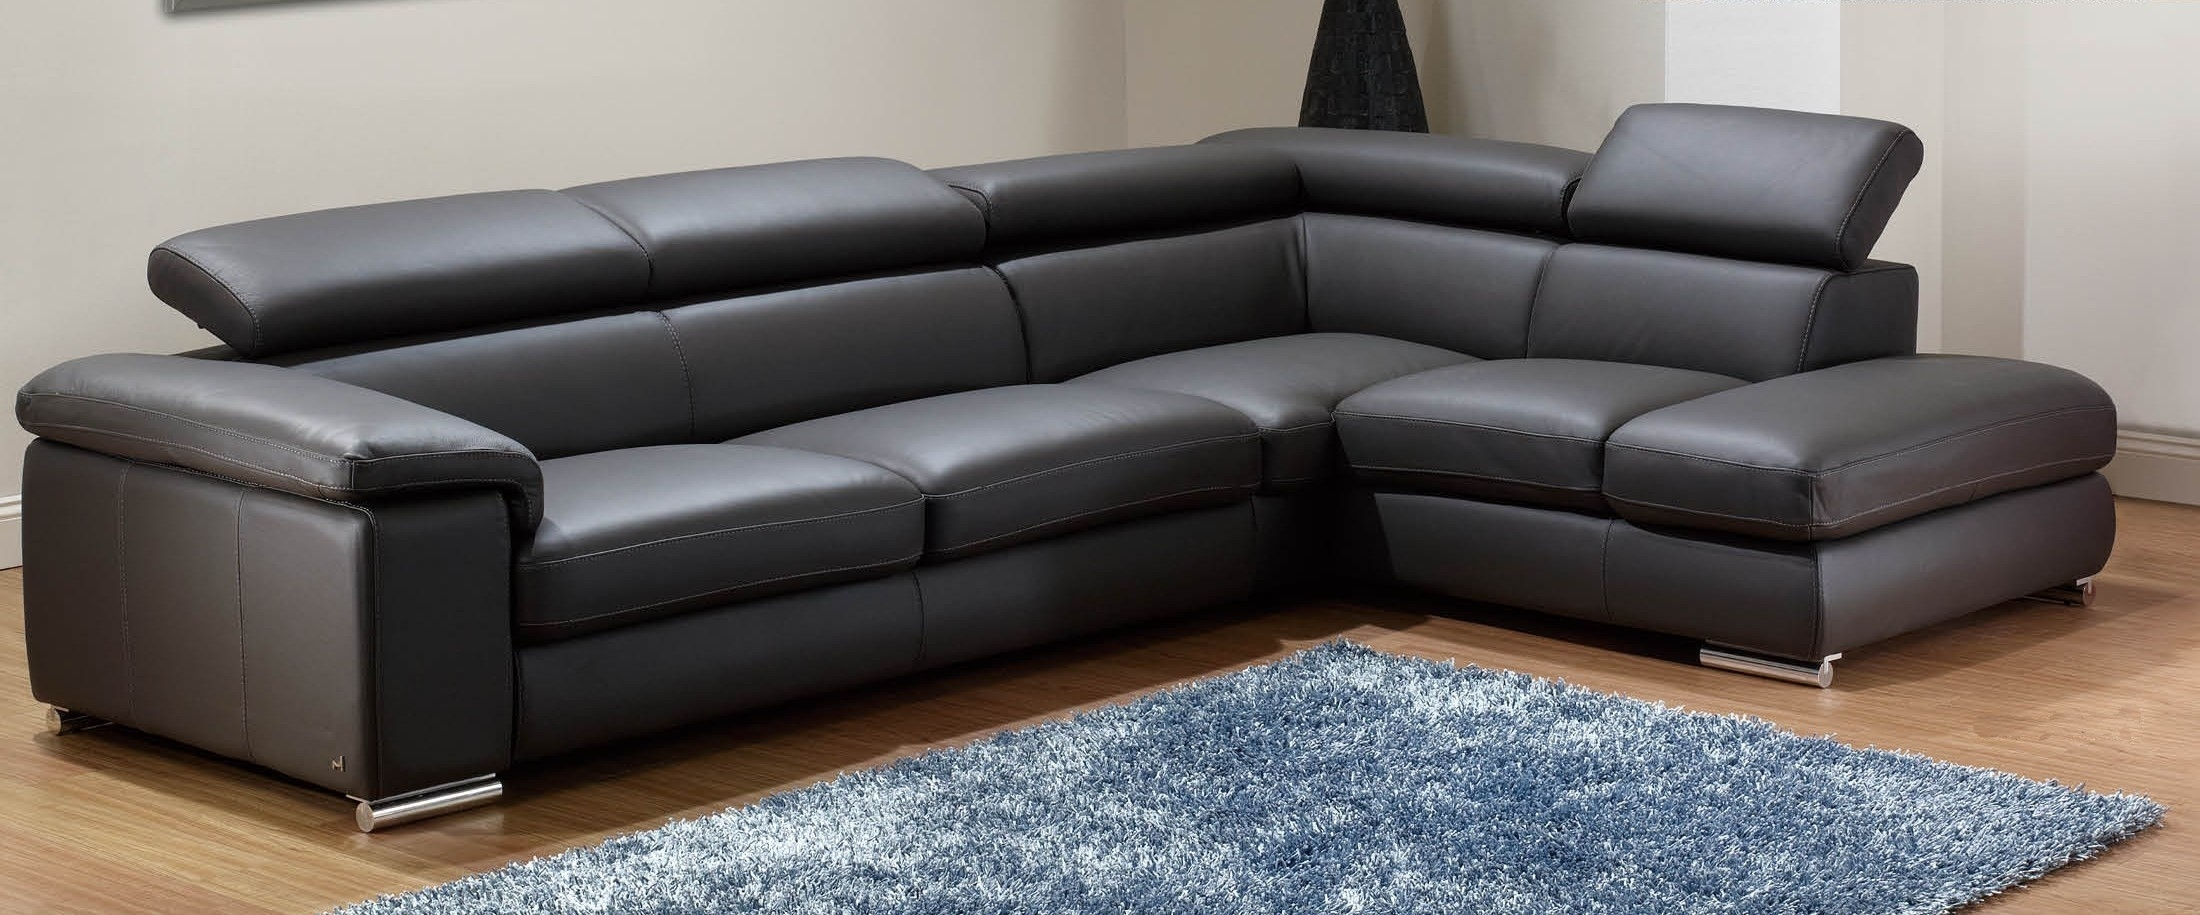 Furniture : Tufted Faux Leather Flip Sofa Blue Linen Tufted Sofa in Johnson City Tn Sectional Sofas (Image 4 of 10)